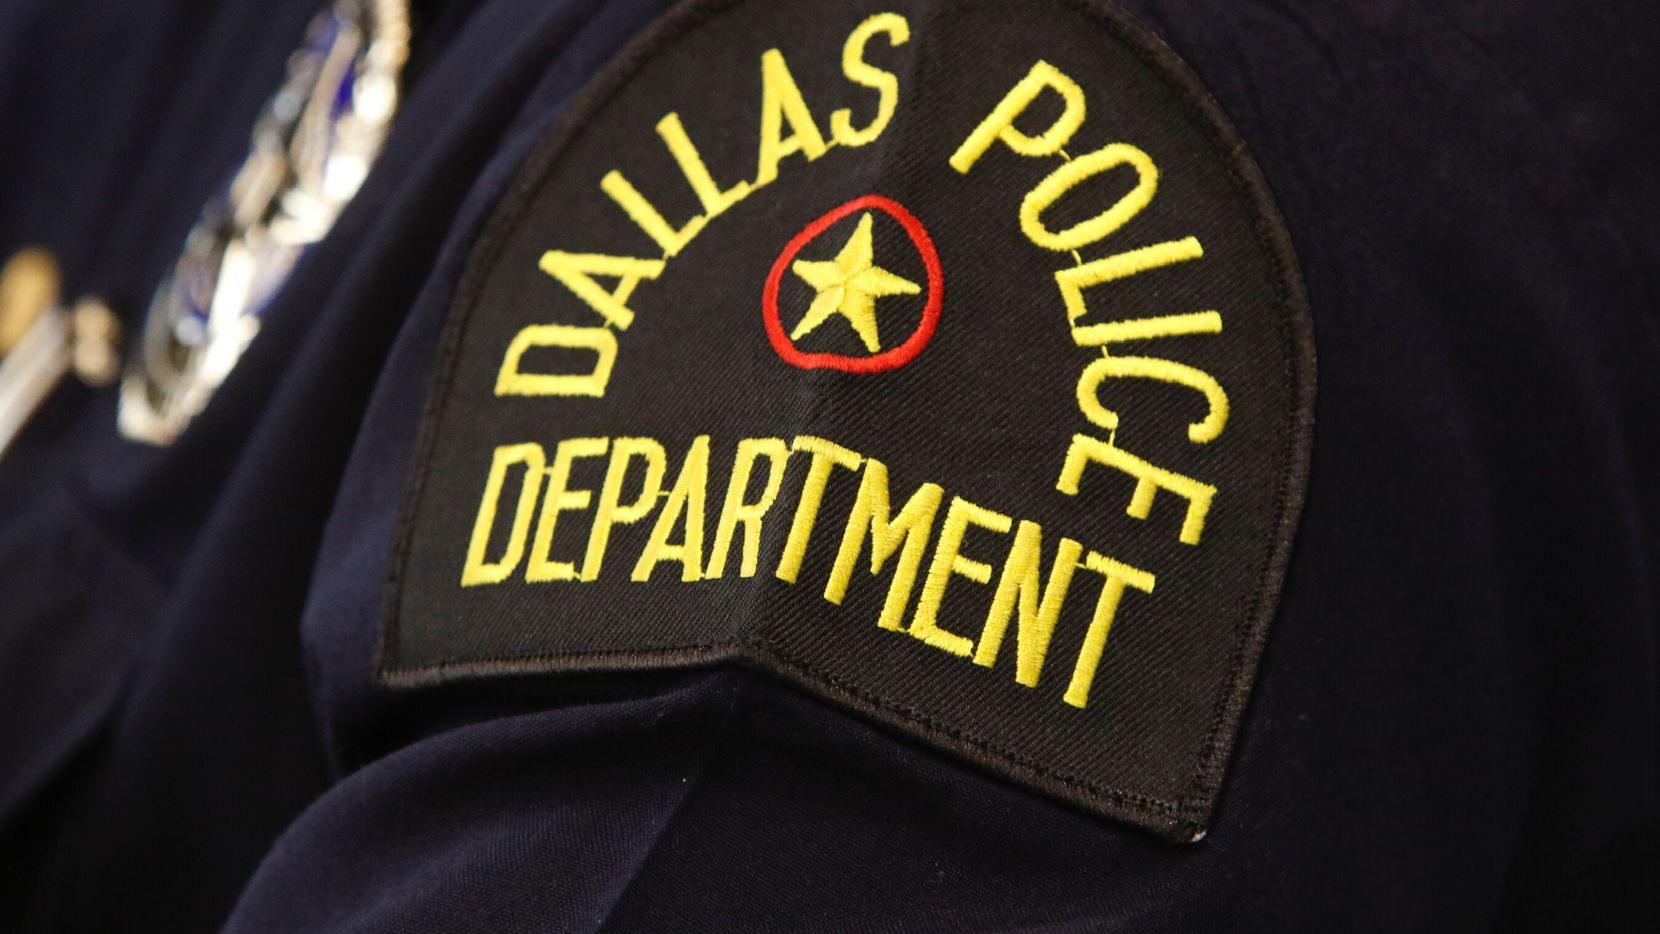 The new coronavirus-questioning by Dallas 911 call takers is geared toward keeping officers safe and preventing the spread of the disease, the department says.